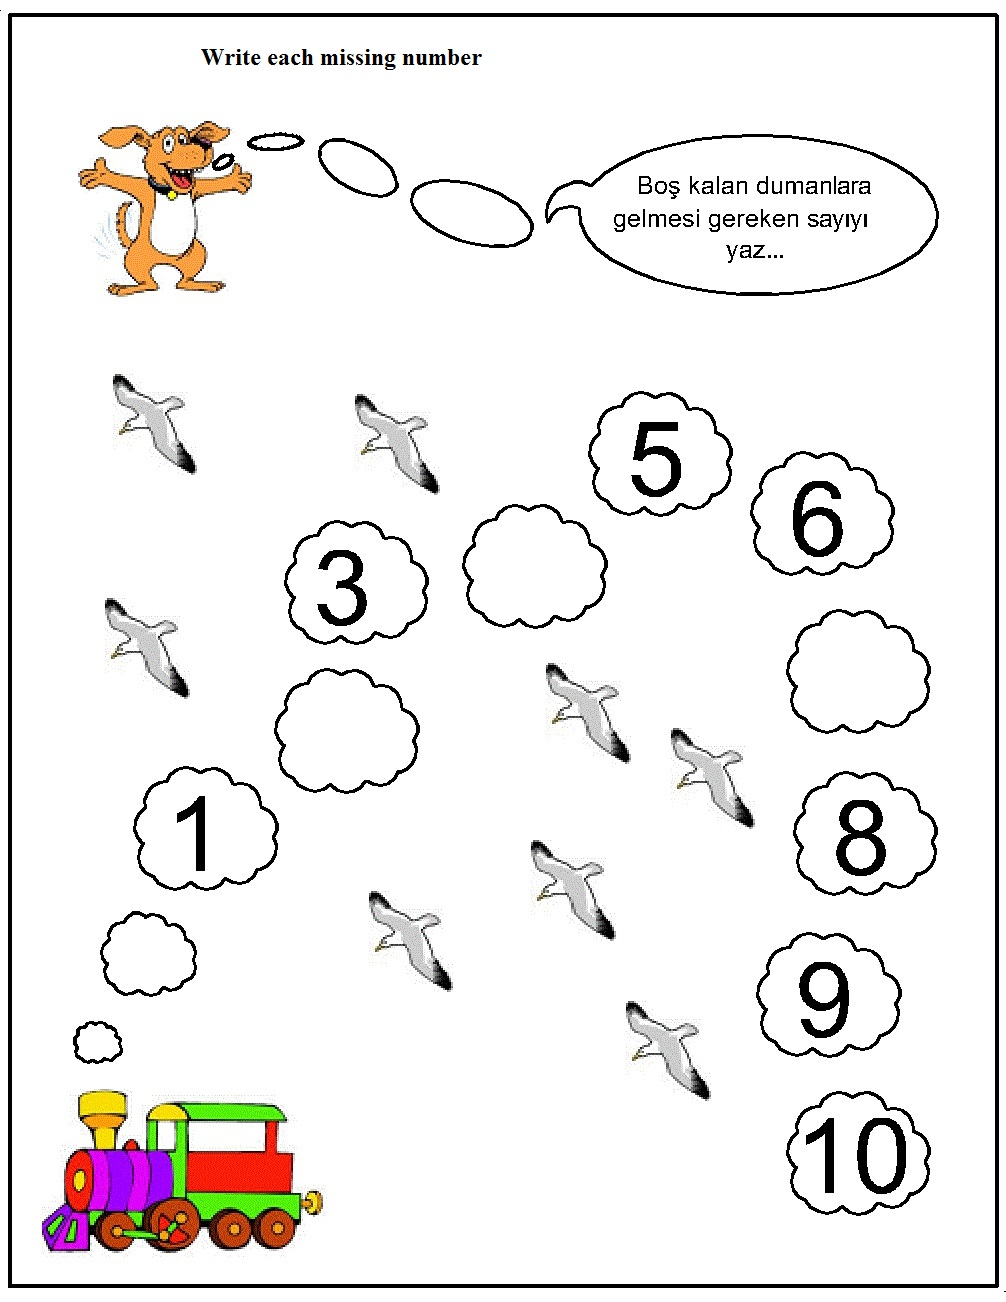 worksheet Fill In The Missing Number Worksheets craftsactvities and worksheets for preschooltoddler kindergarten missing number worksheet kids 17